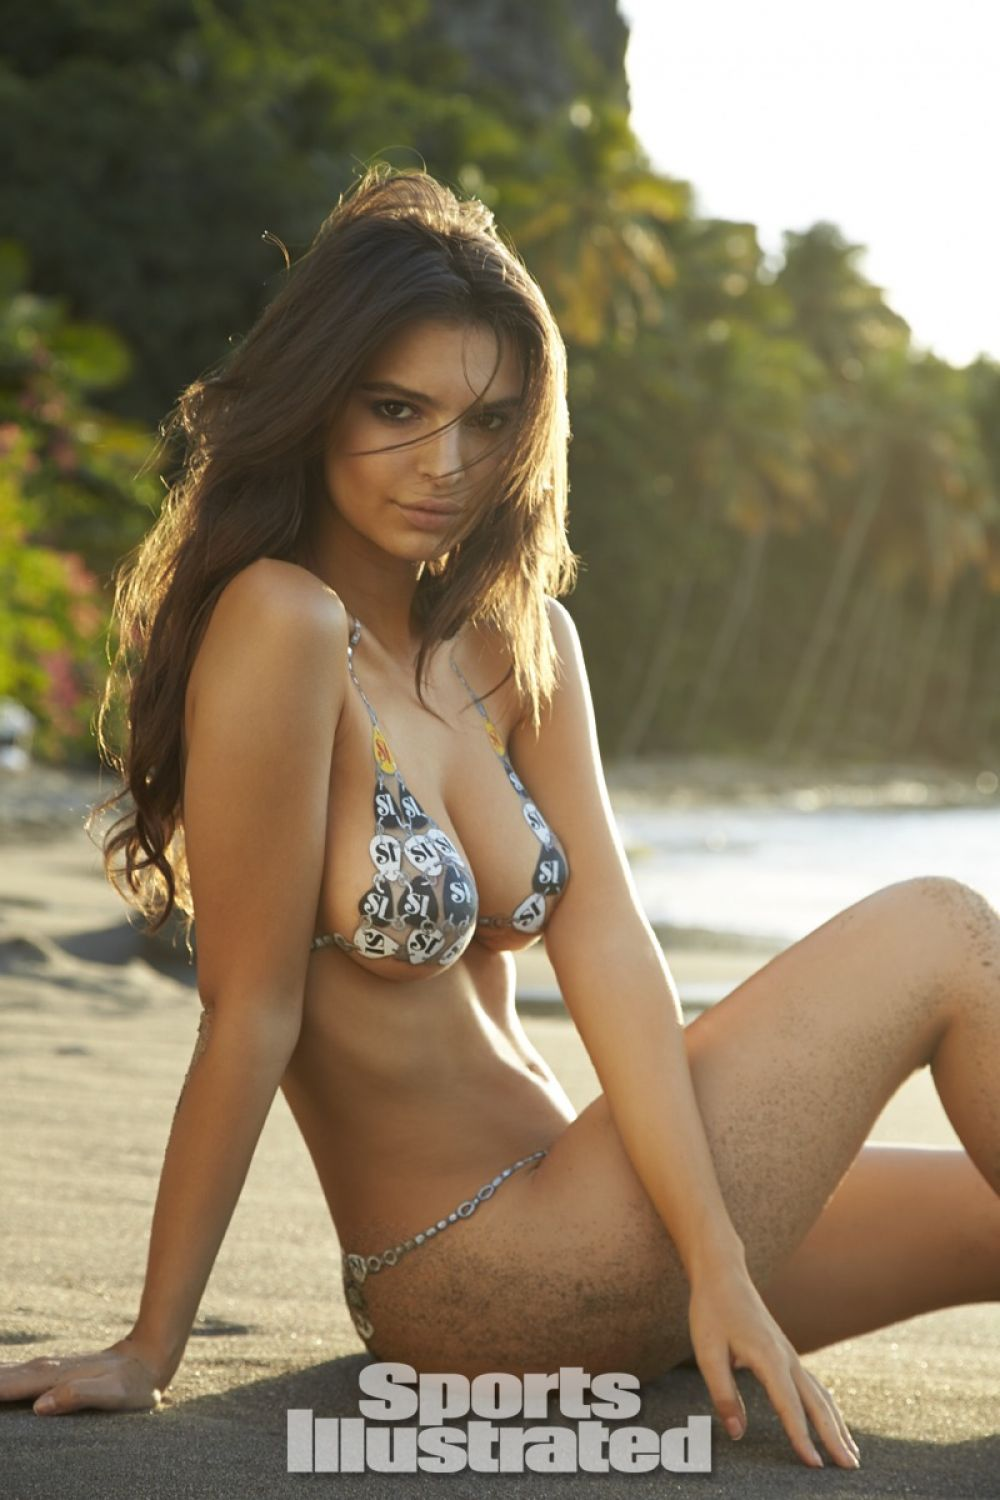 emily-ratajkowski-in-sports-illustrated-2014-swimsuit-issue_12.jpg - 135.26 KB